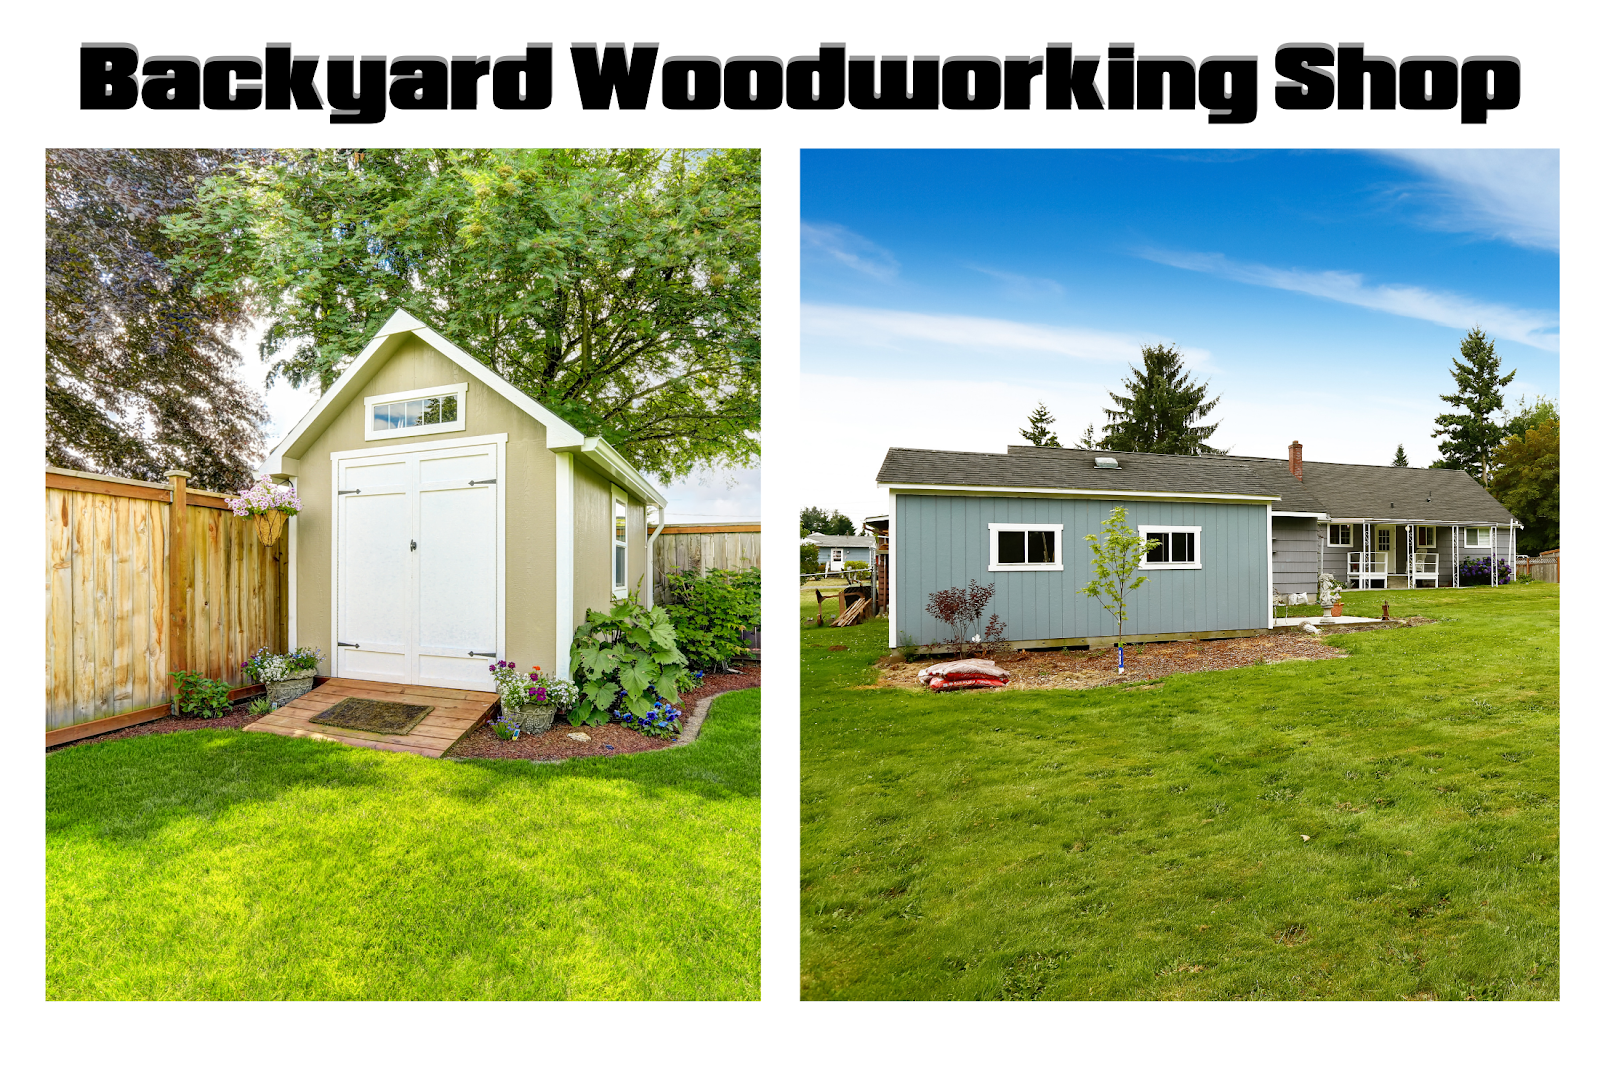 Diffrent types of backyard woodworking shop